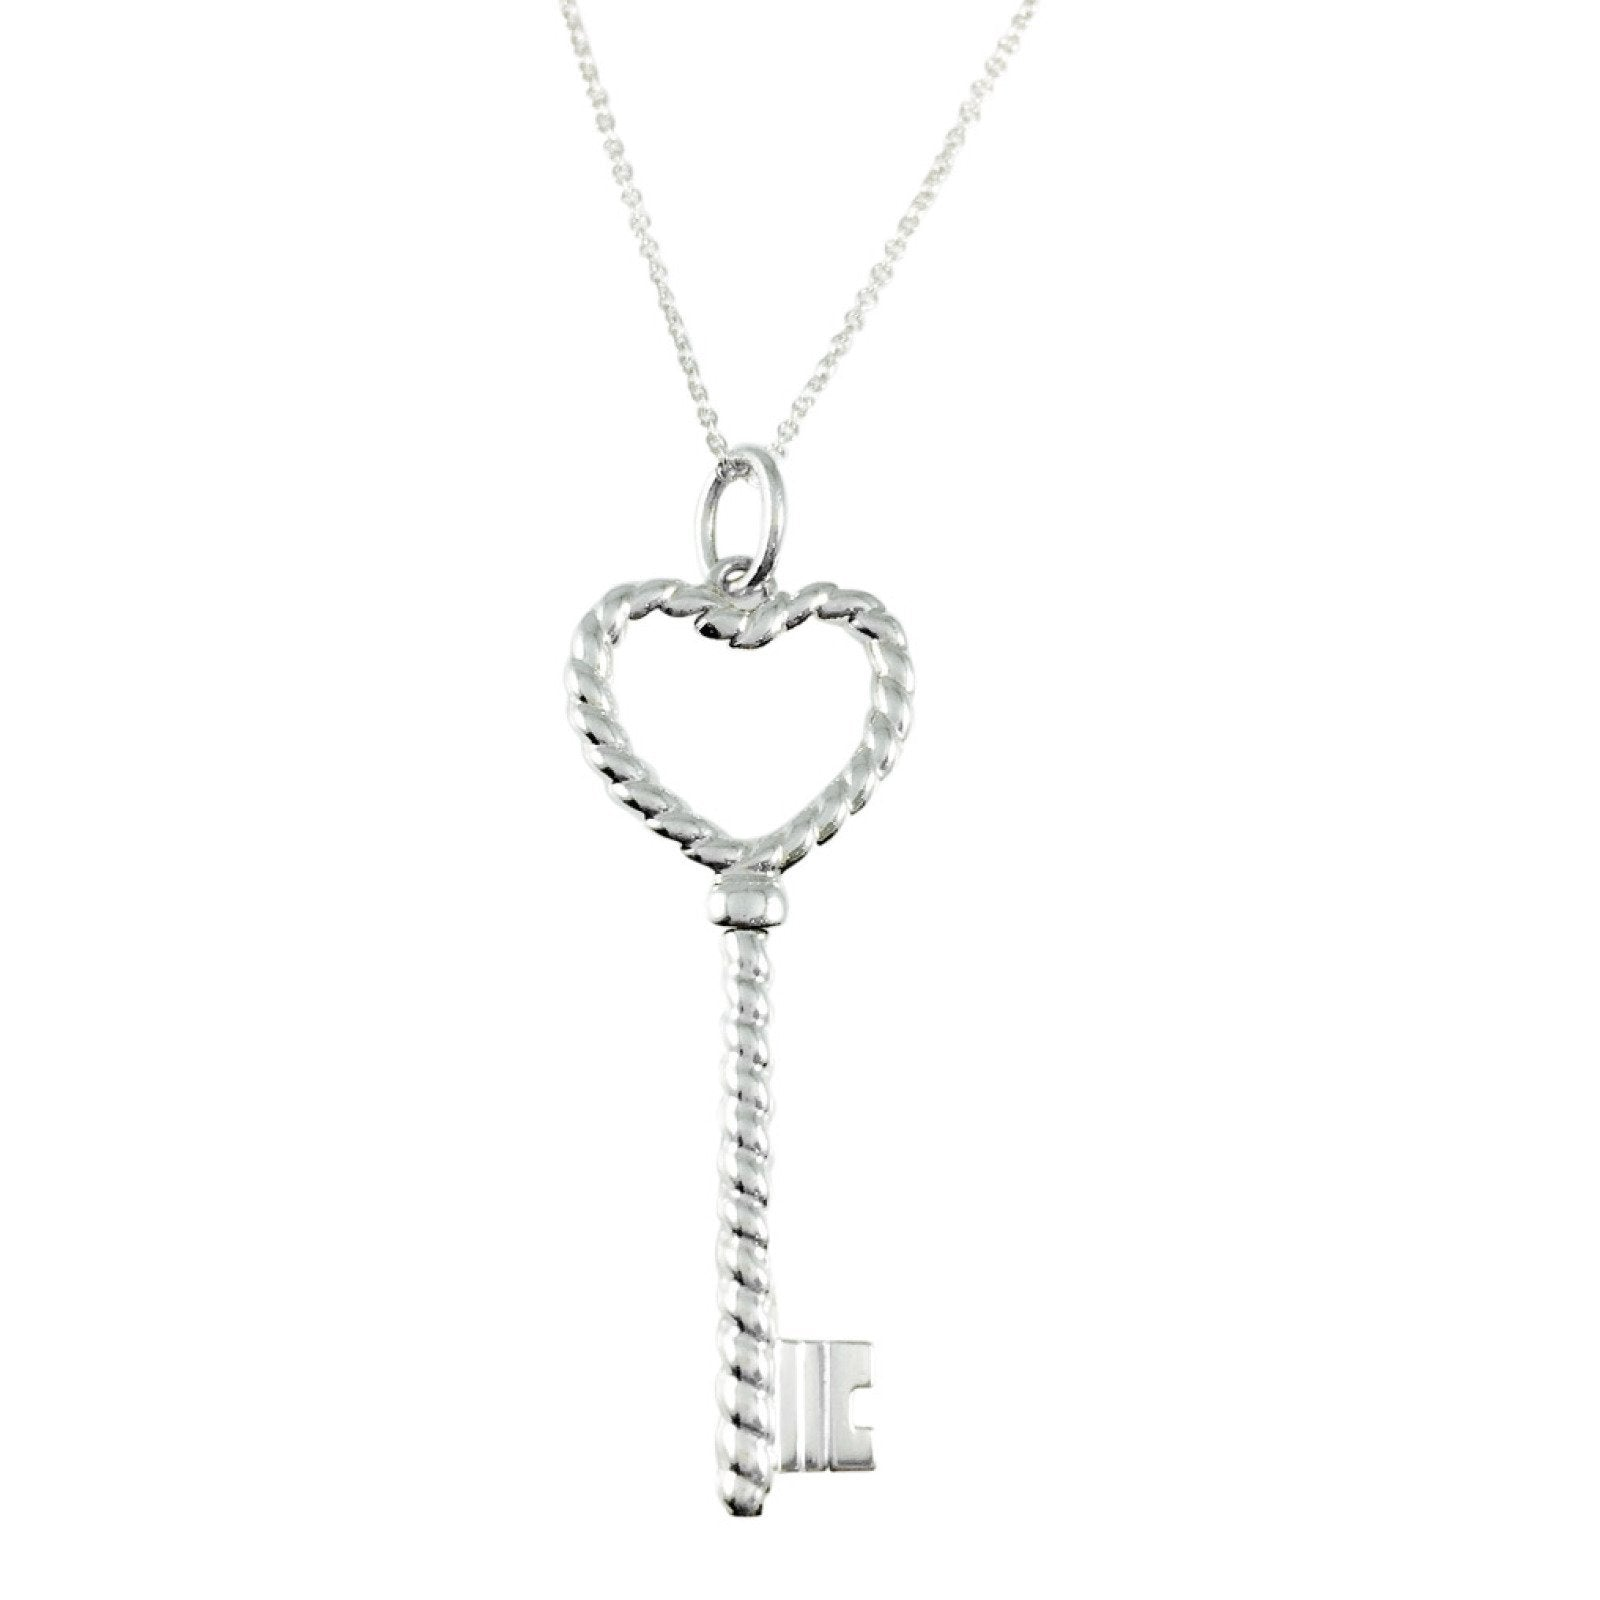 Tiffany co twist heart key pendant necklace oliver jewellery tiffany co twist heart key pendant necklace necklaces aloadofball Image collections